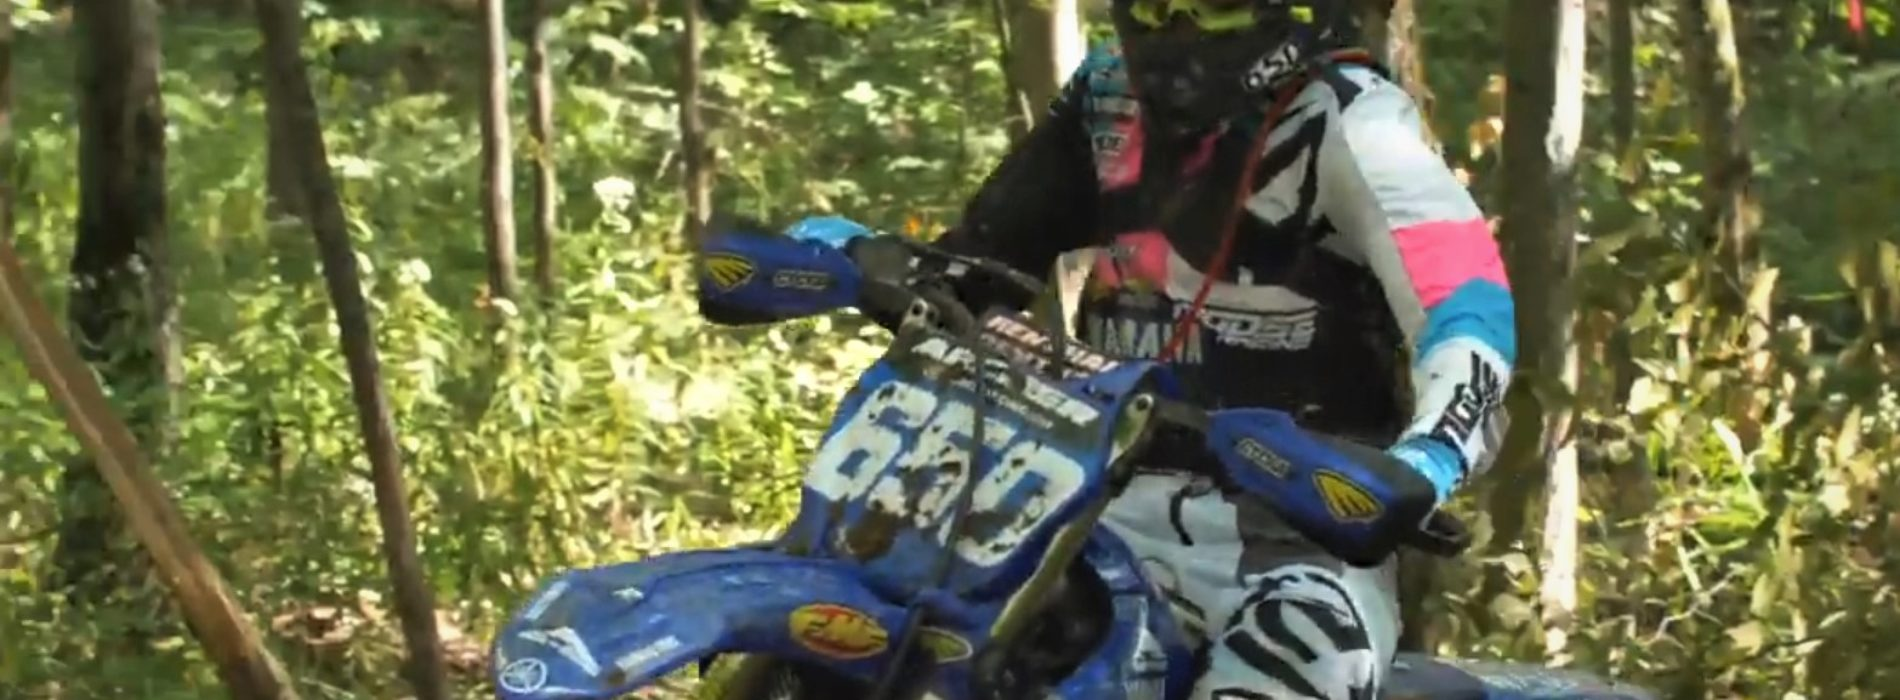 Rachael Archer races GNCC WXC Round 11 at Mason Dixie this weekend